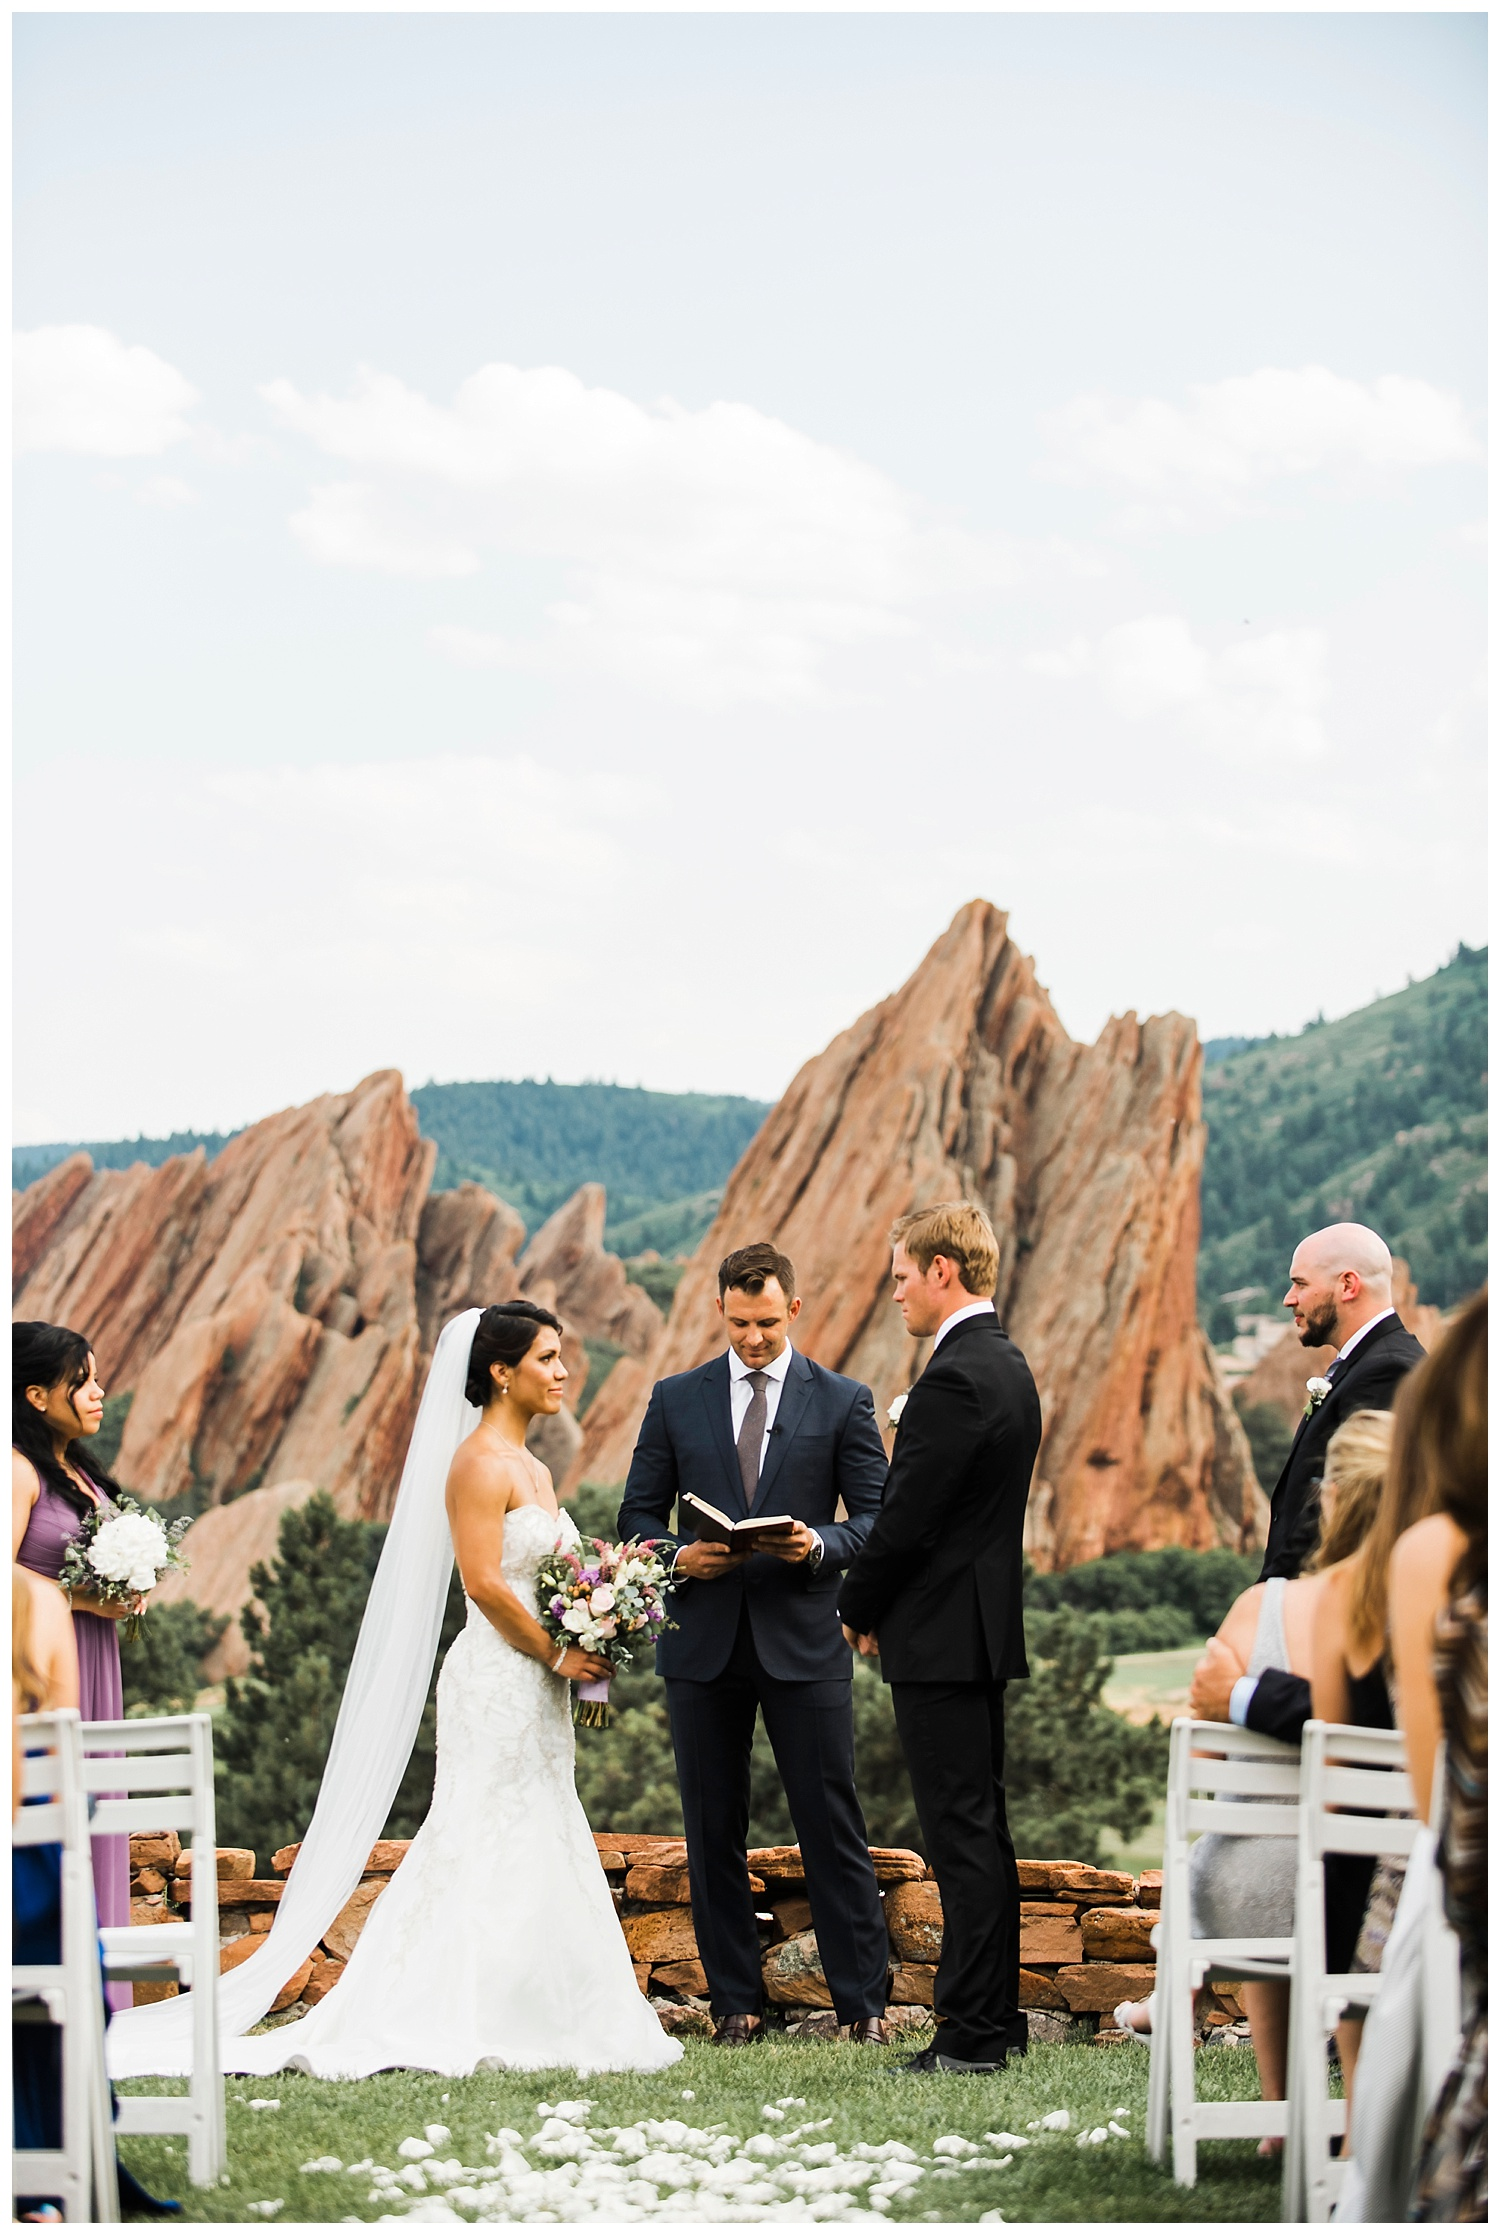 Arrowhead_Golf_Course_Wedding_Littleton_Colorado_Apollo_Fields_160.jpg